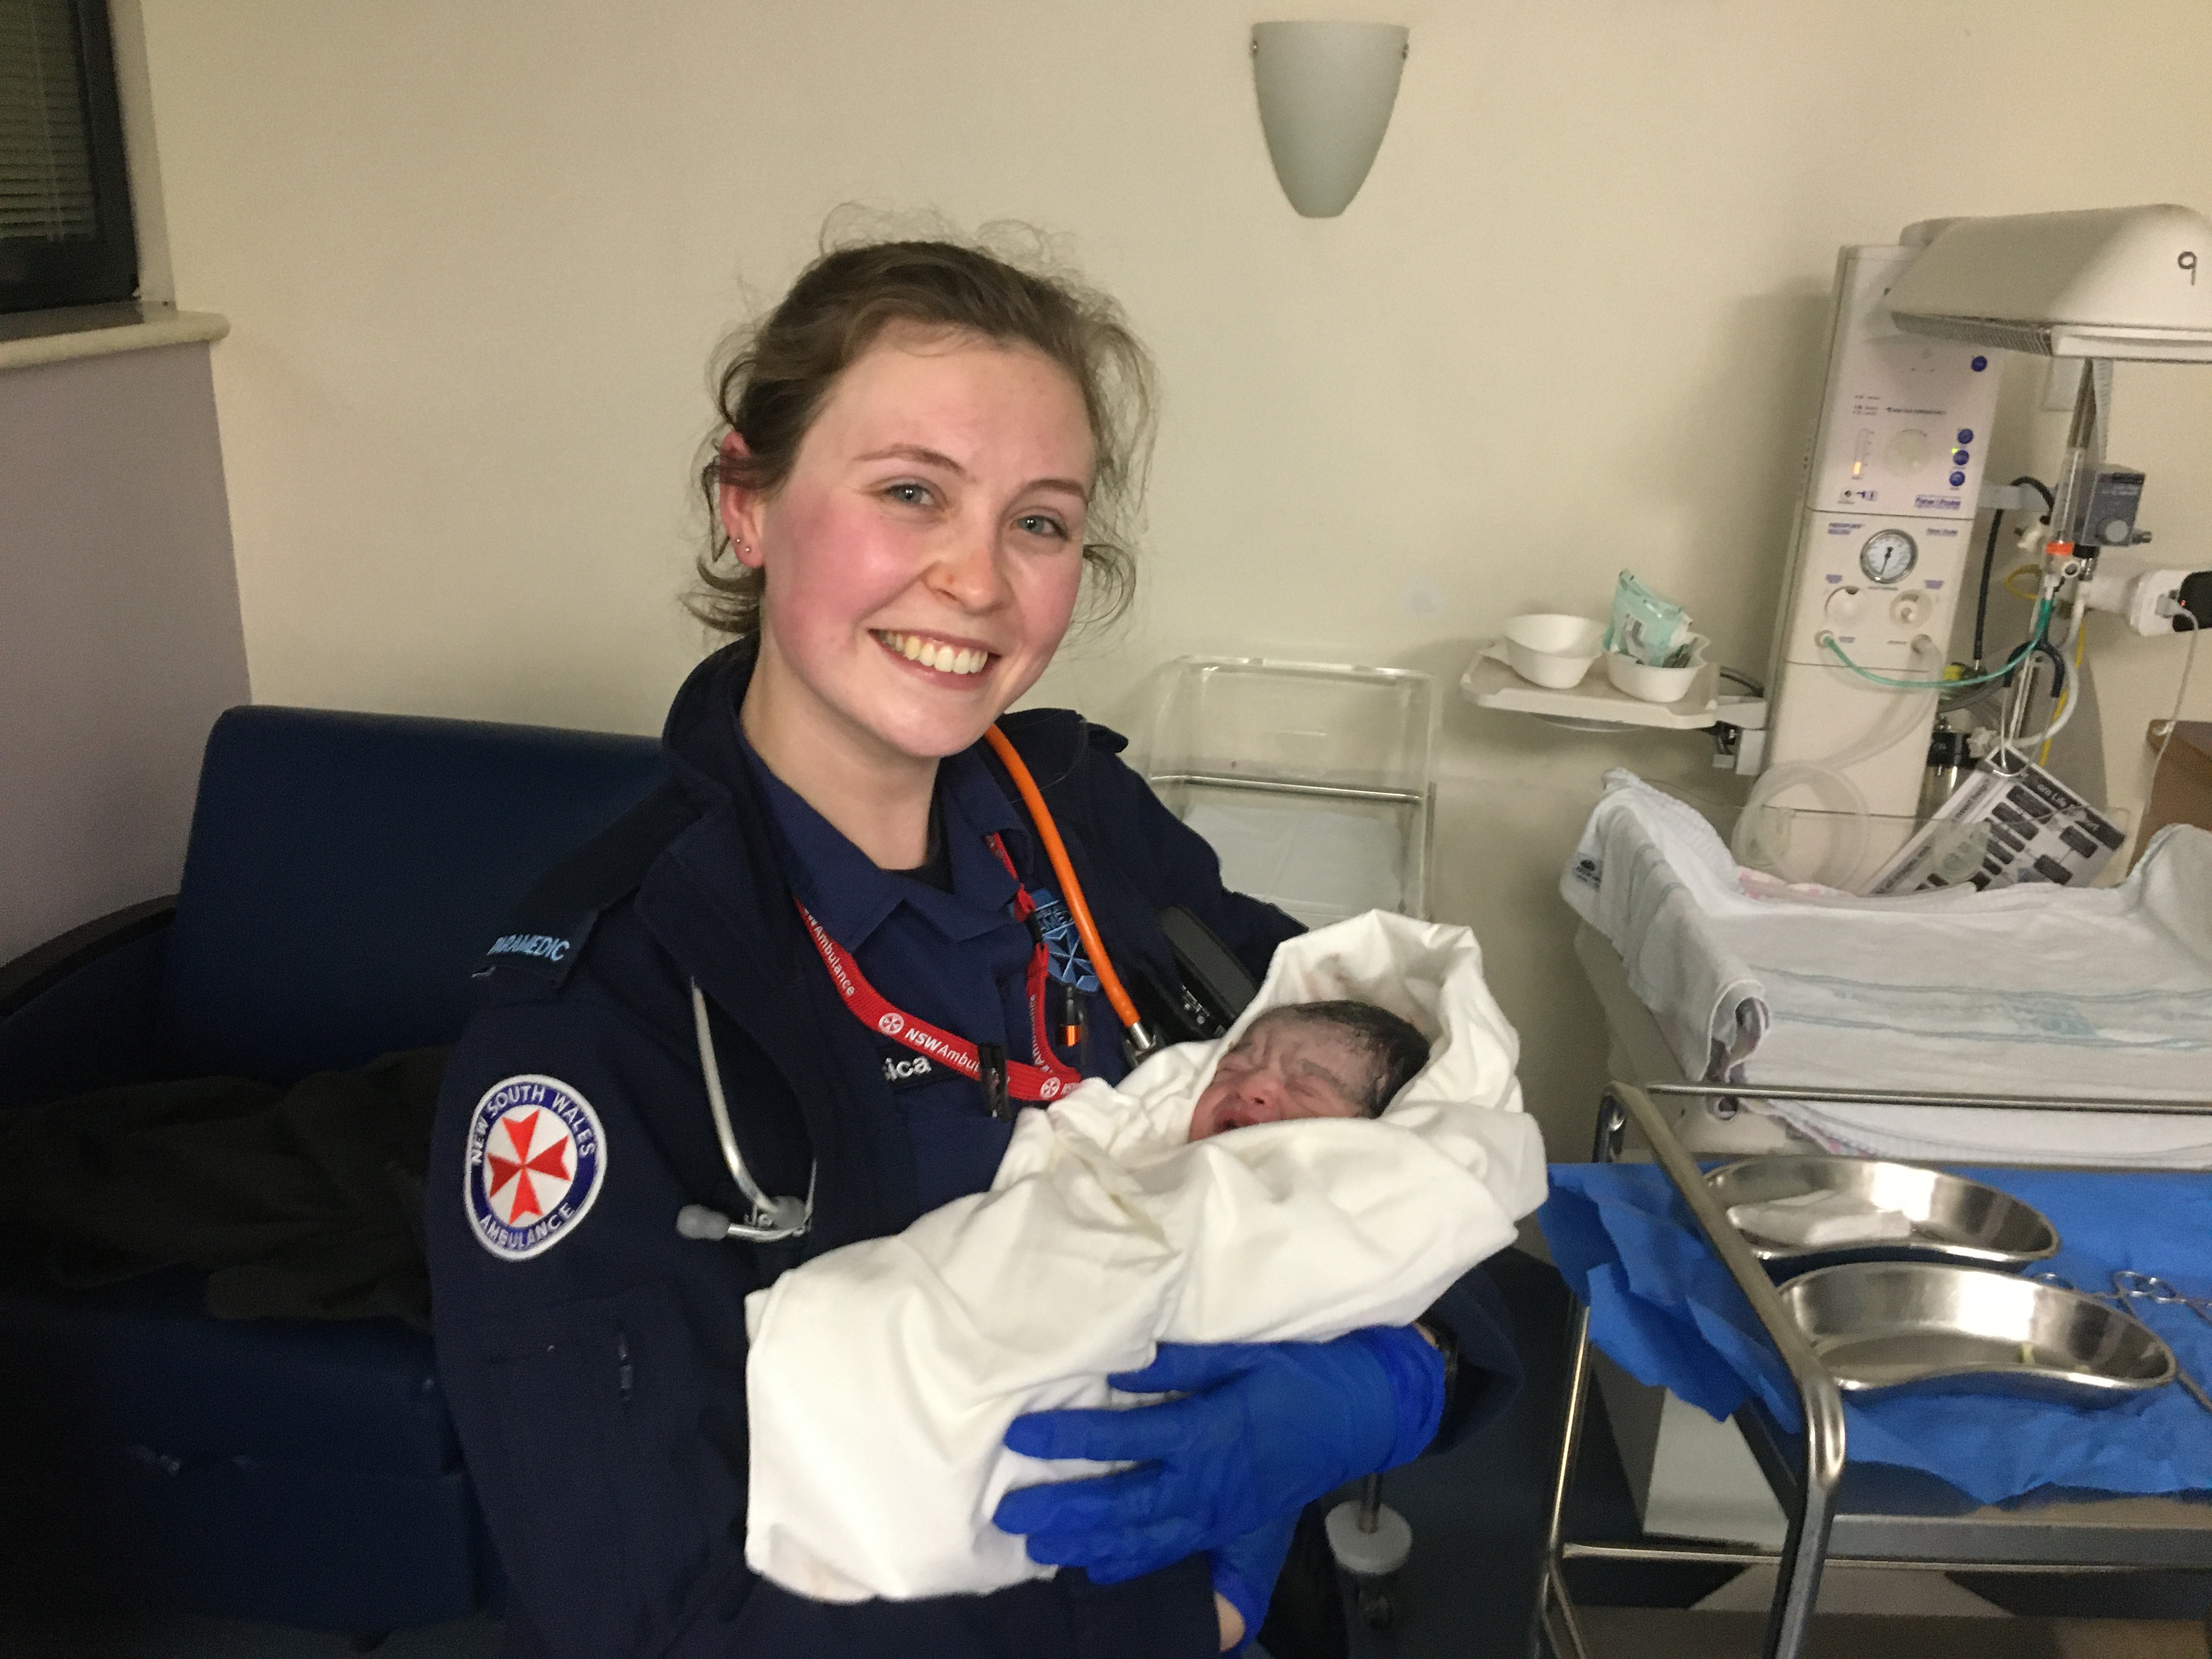 EXCLUSIVE | Baby's dramatic entrance into the world makes a young paramedic's dream come true